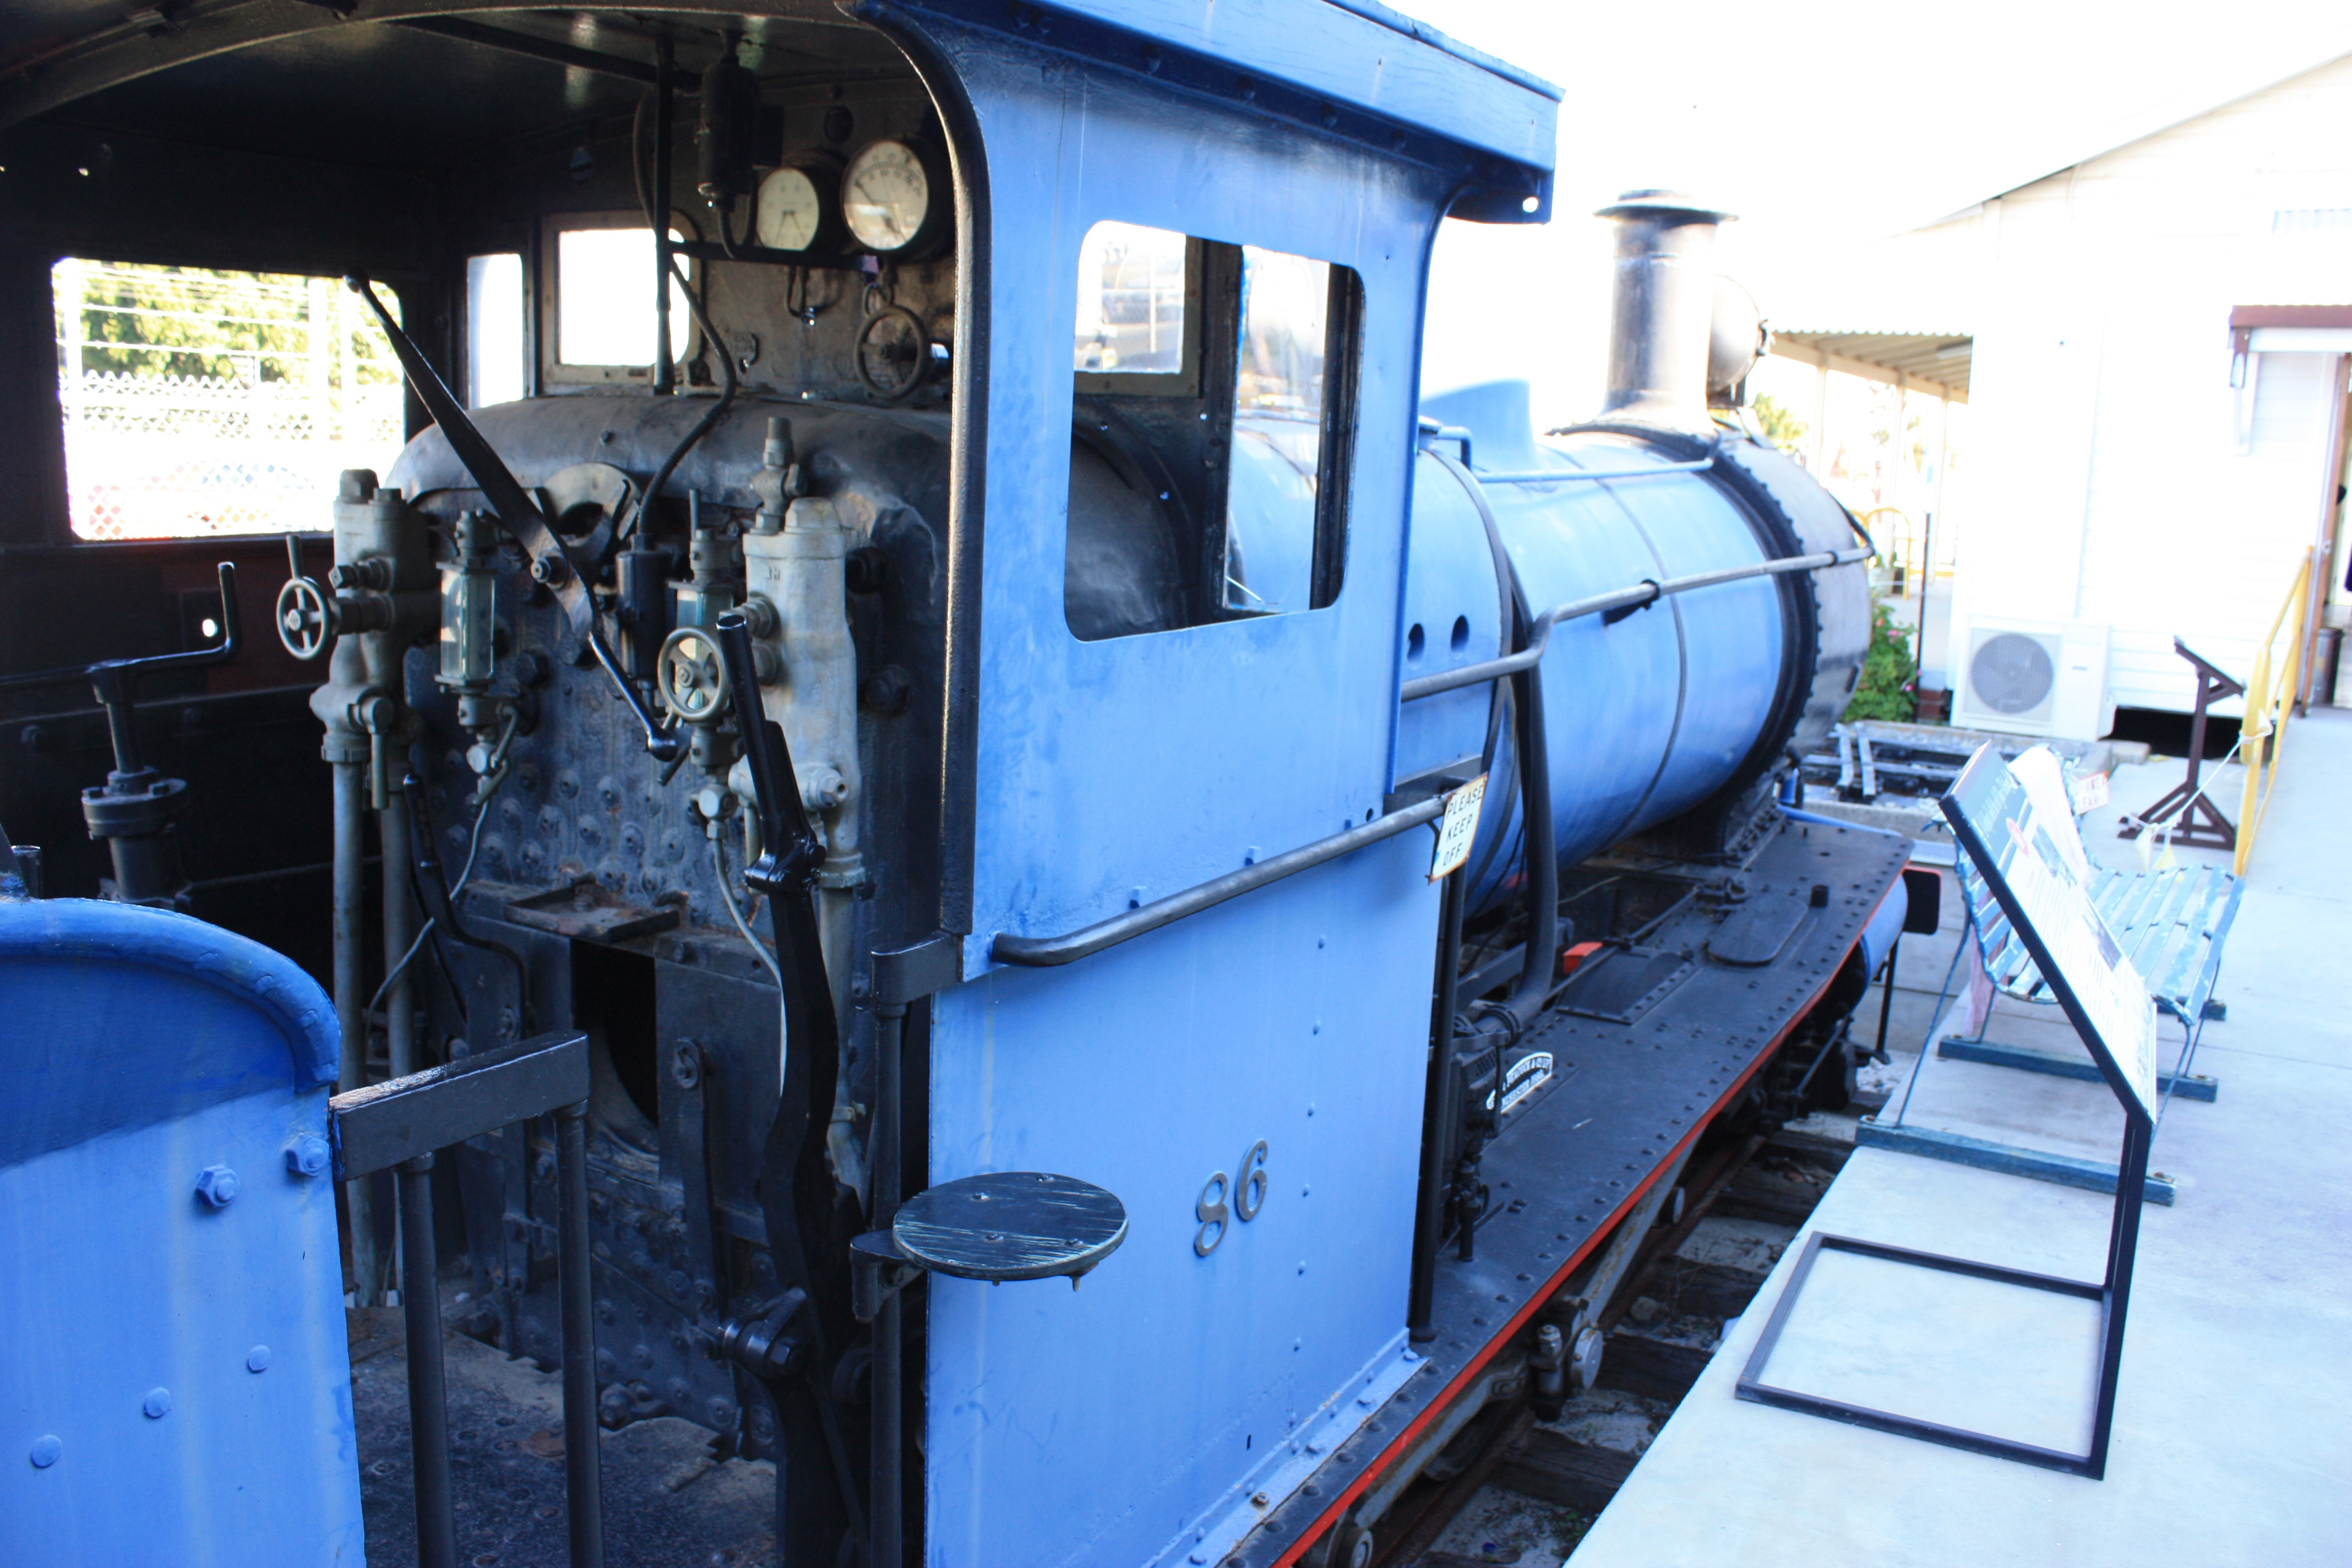 Yx86 at Bassendean Railway Museum